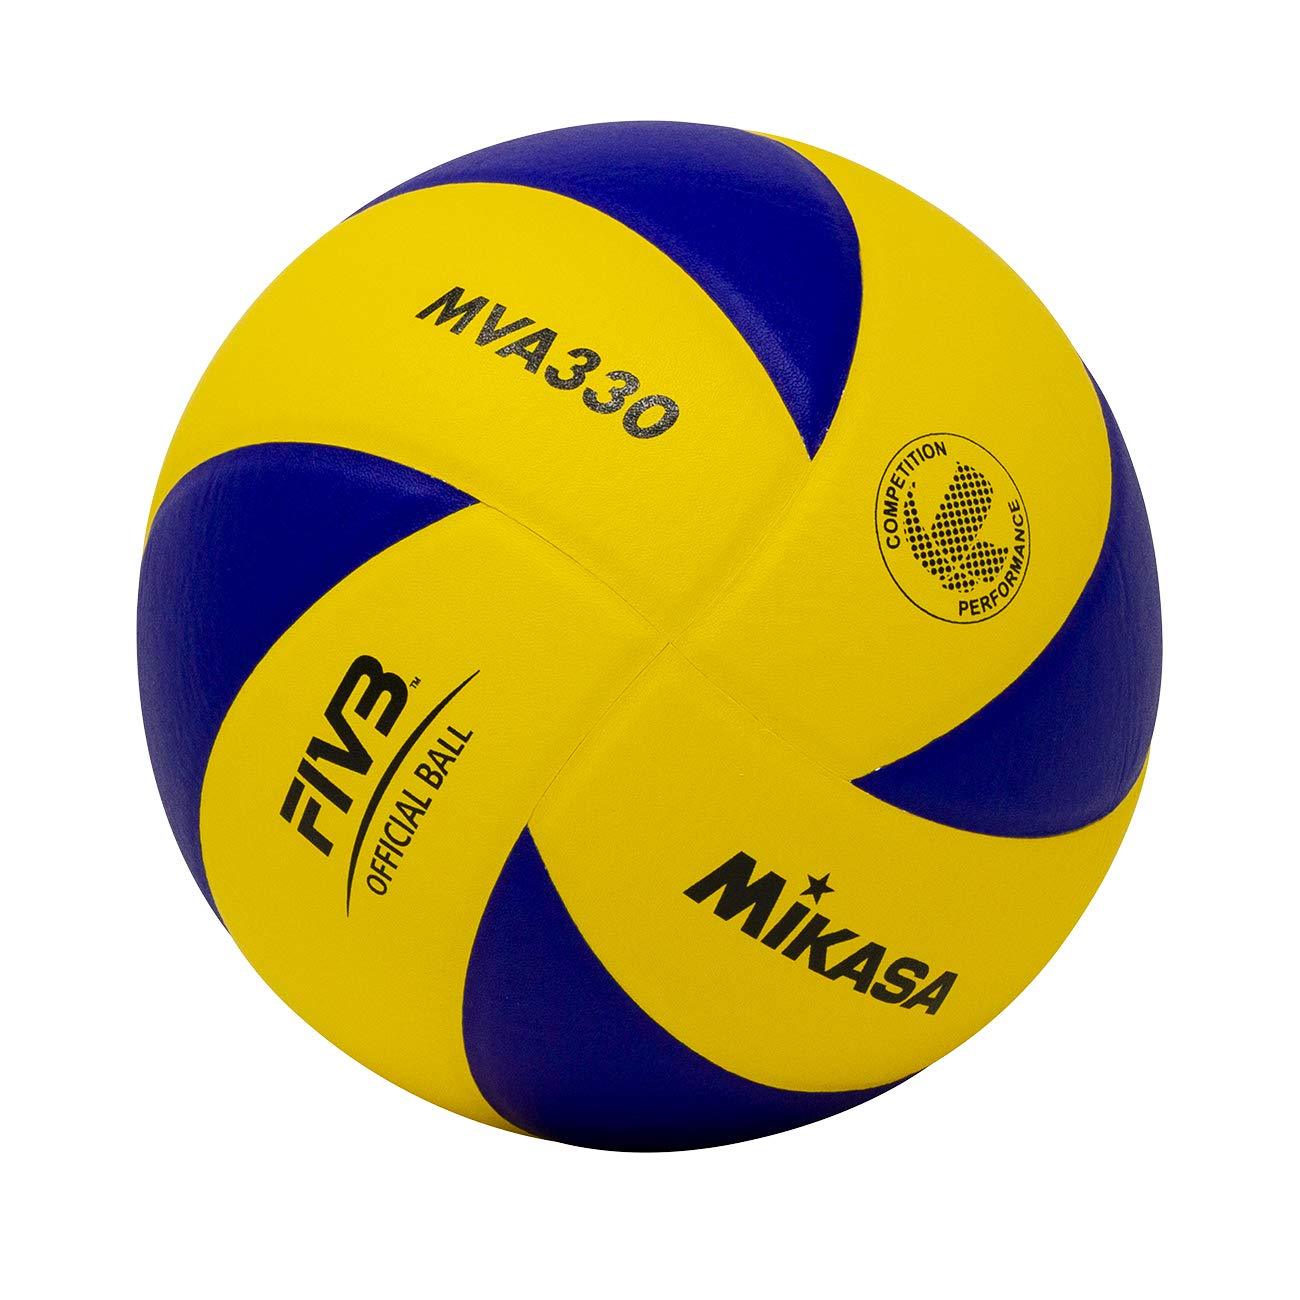 Buy Mikasa Mva330 Spiral Club Volleyball Blue Yellow Online At Low Prices In India Amazon In